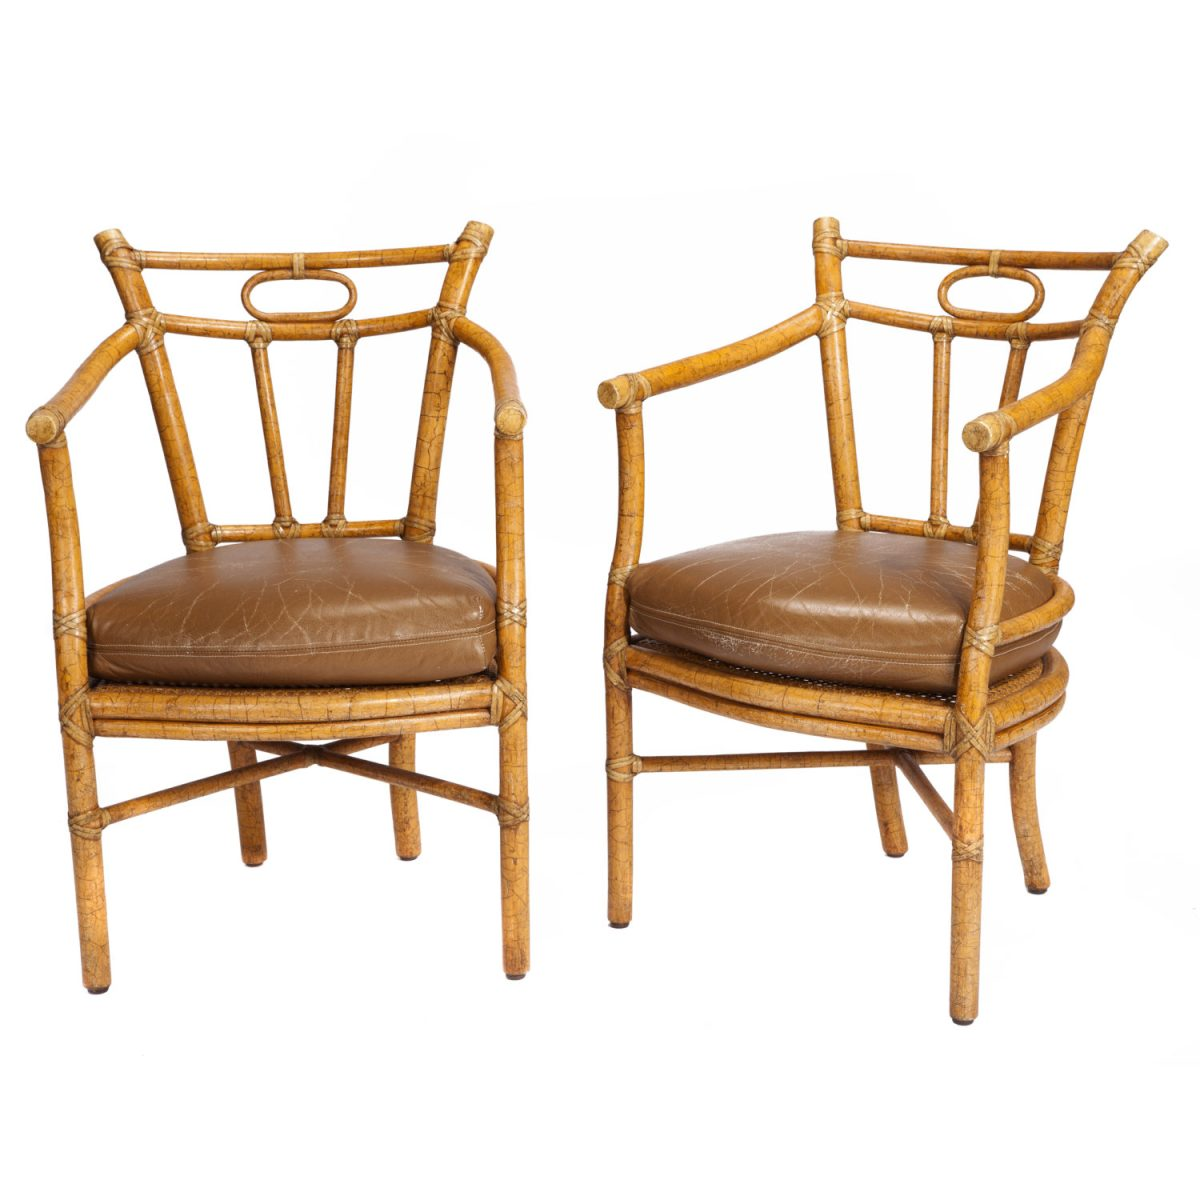 "<p><a href=""https://finesf.com/lot/pair-of-mcguire-chairs-4019121"">Pair of McGuire Chairs Designed by Andrew Delfino (M-89)</a></p>"